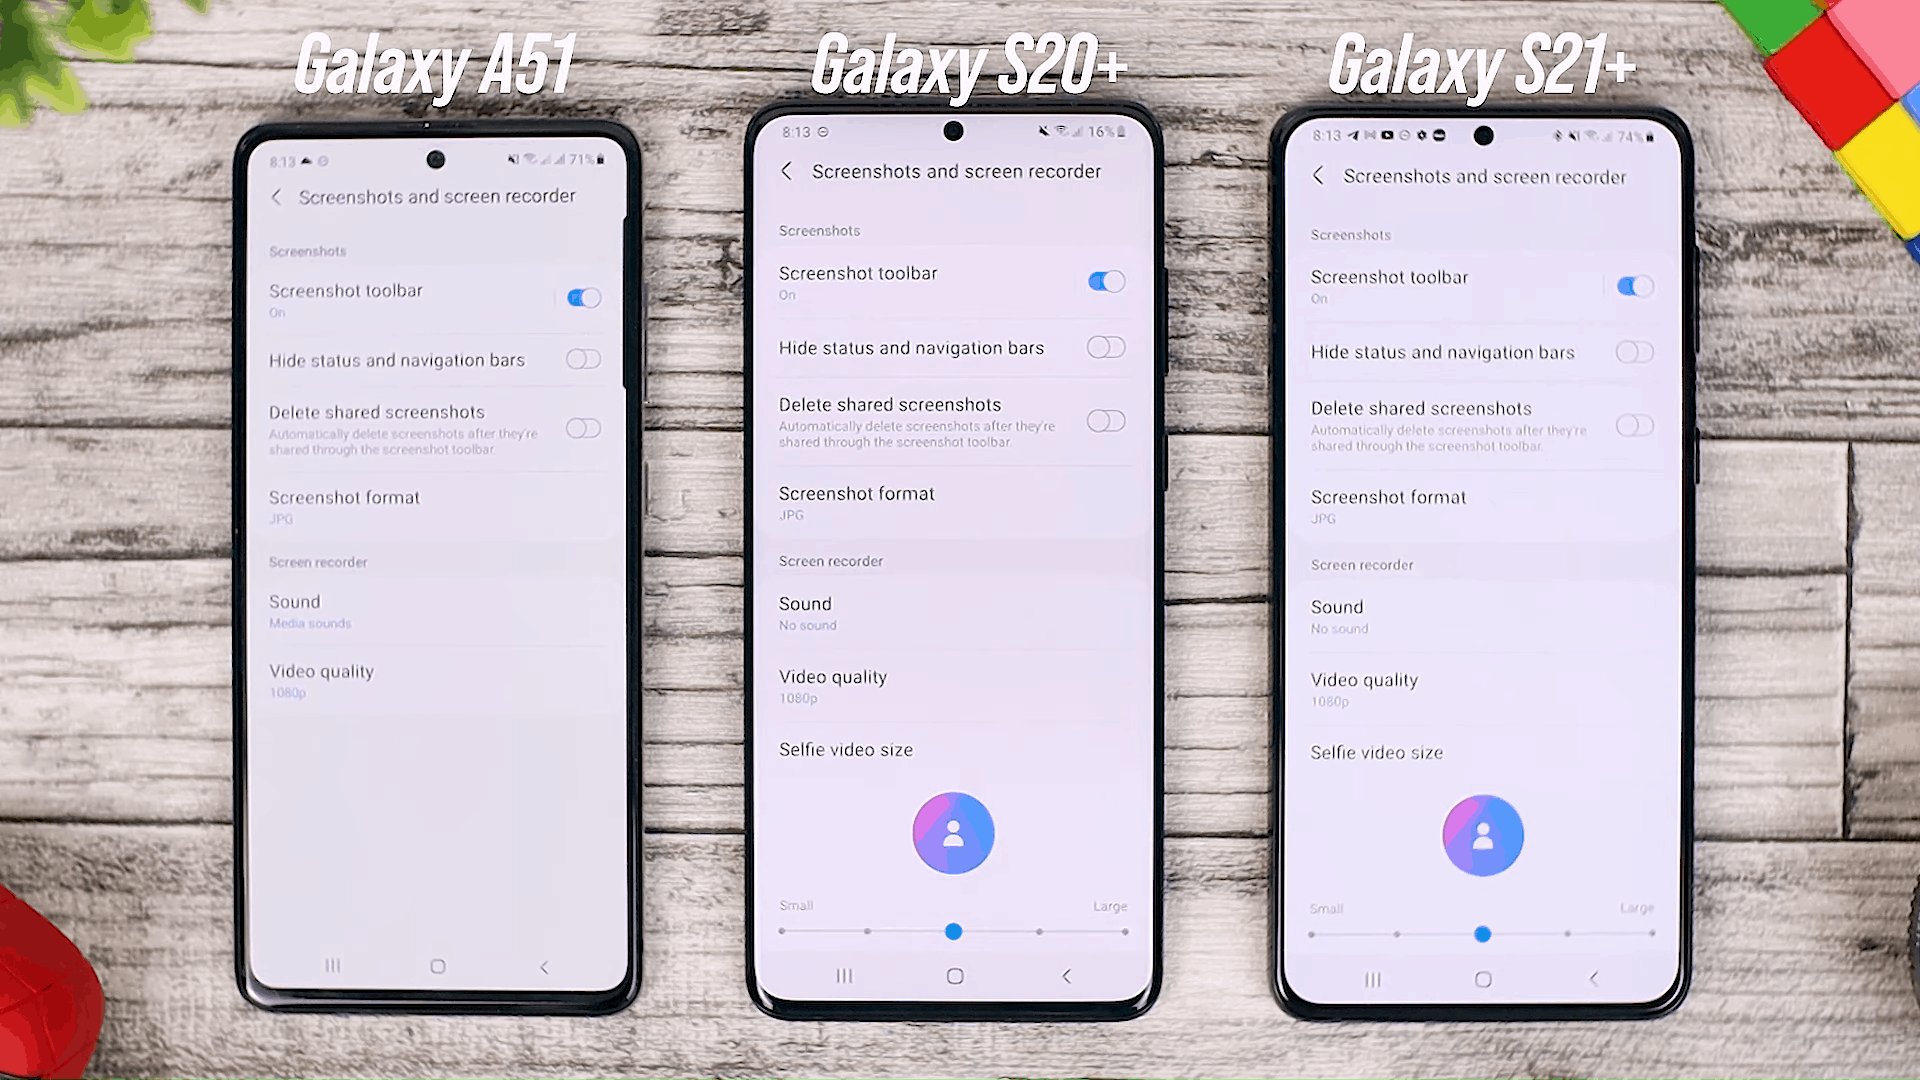 Screen Recorder Option - Fitur One UI 3.0 di Galaxy A51 dan Perbandingannya dengan Galaxy S20+ dan One UI 3.1 di Galaxy S21+